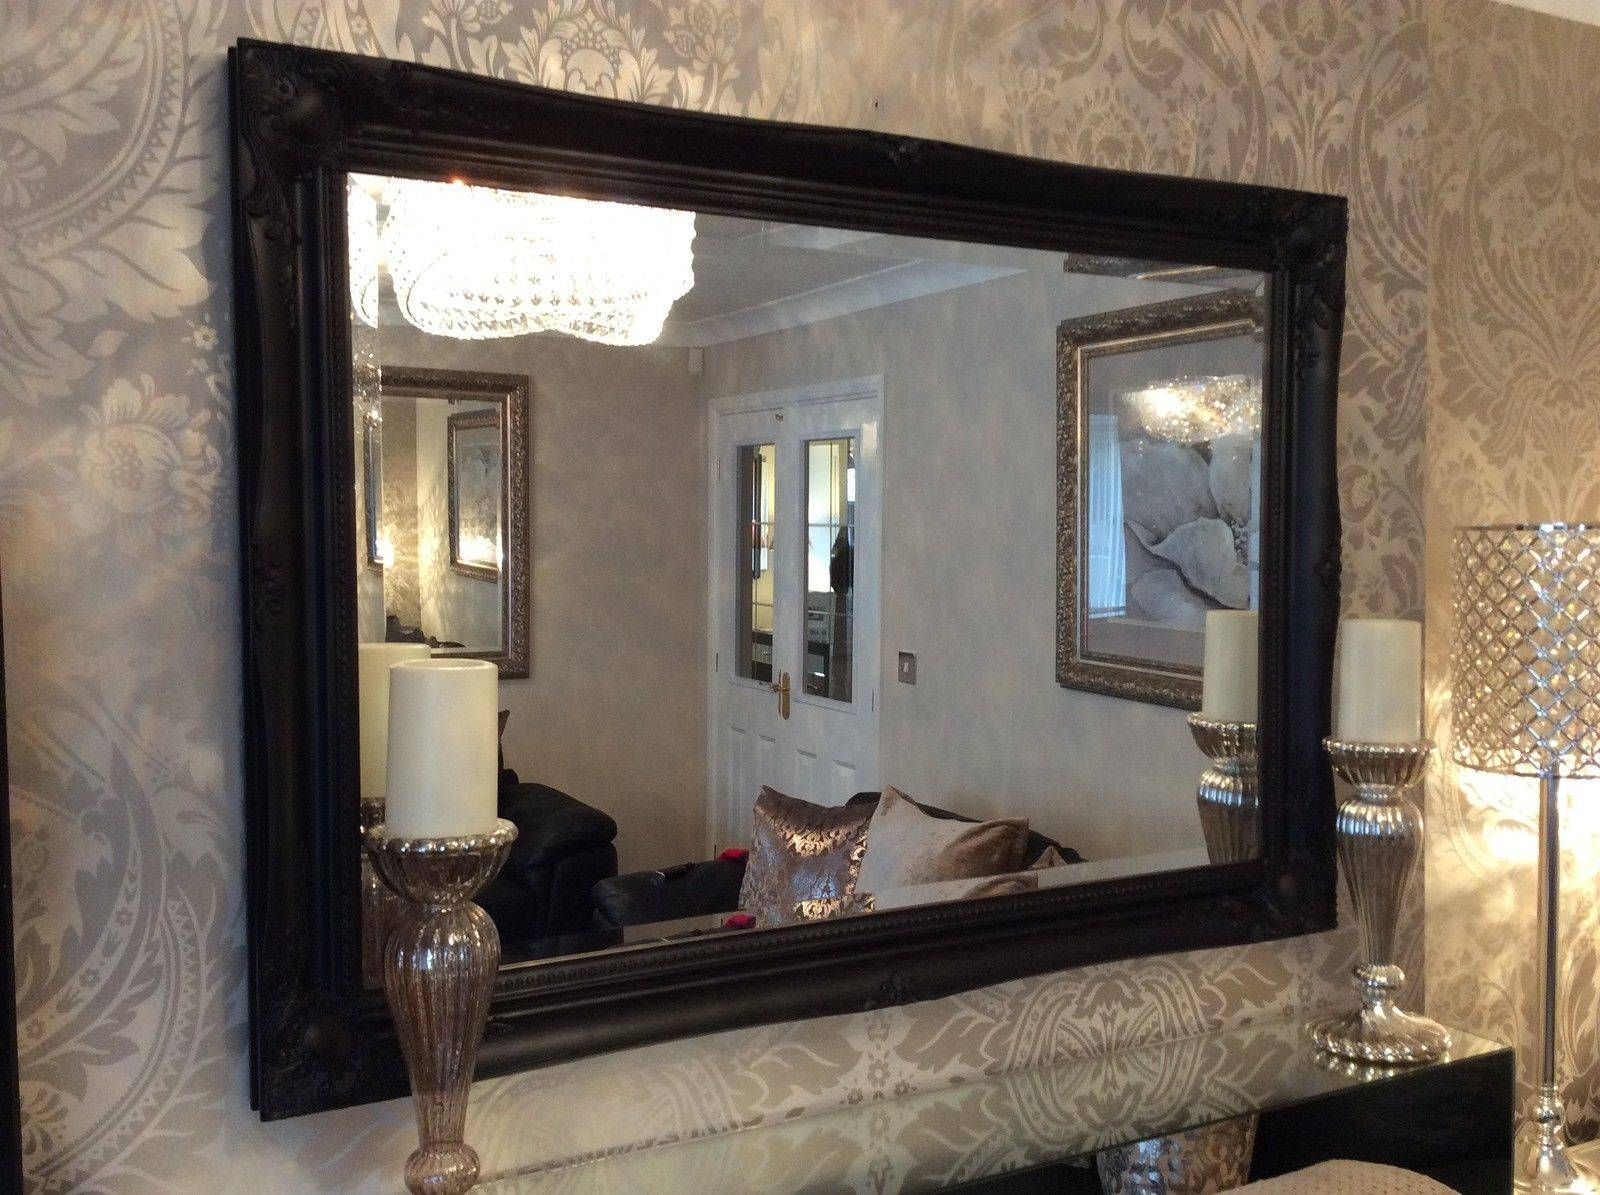 New Large Black Shabby Chic Bevelled Wall Mirror – 36Inch X 26Inch Intended For Long Black Wall Mirrors (View 13 of 15)